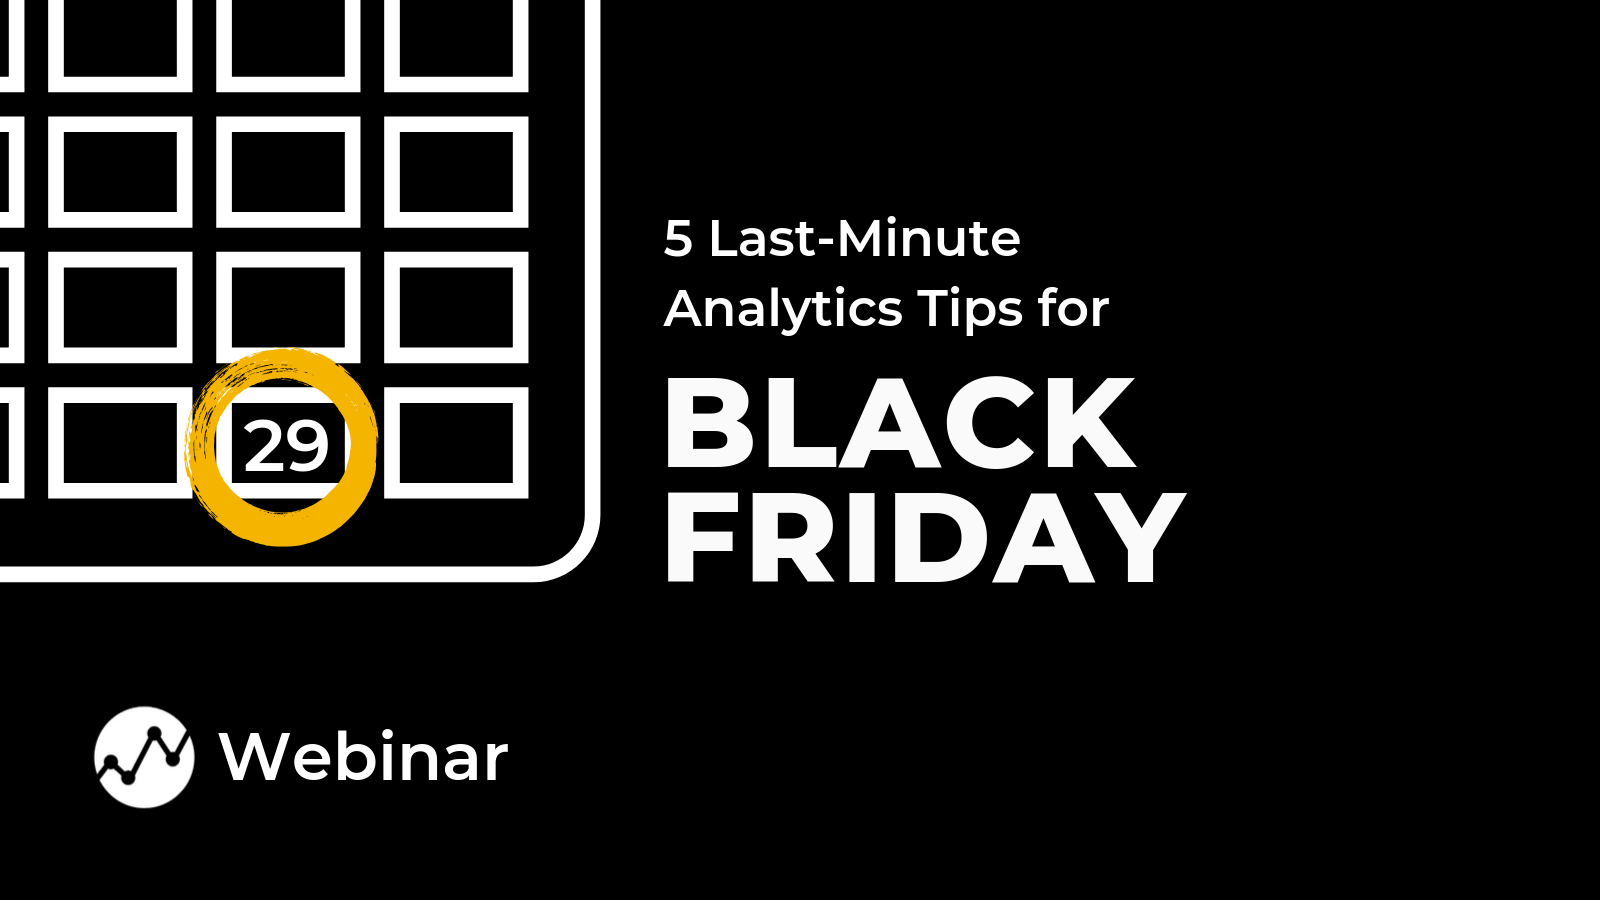 5 Last-Minute Black Friday Analytics Tips for Online Retailers